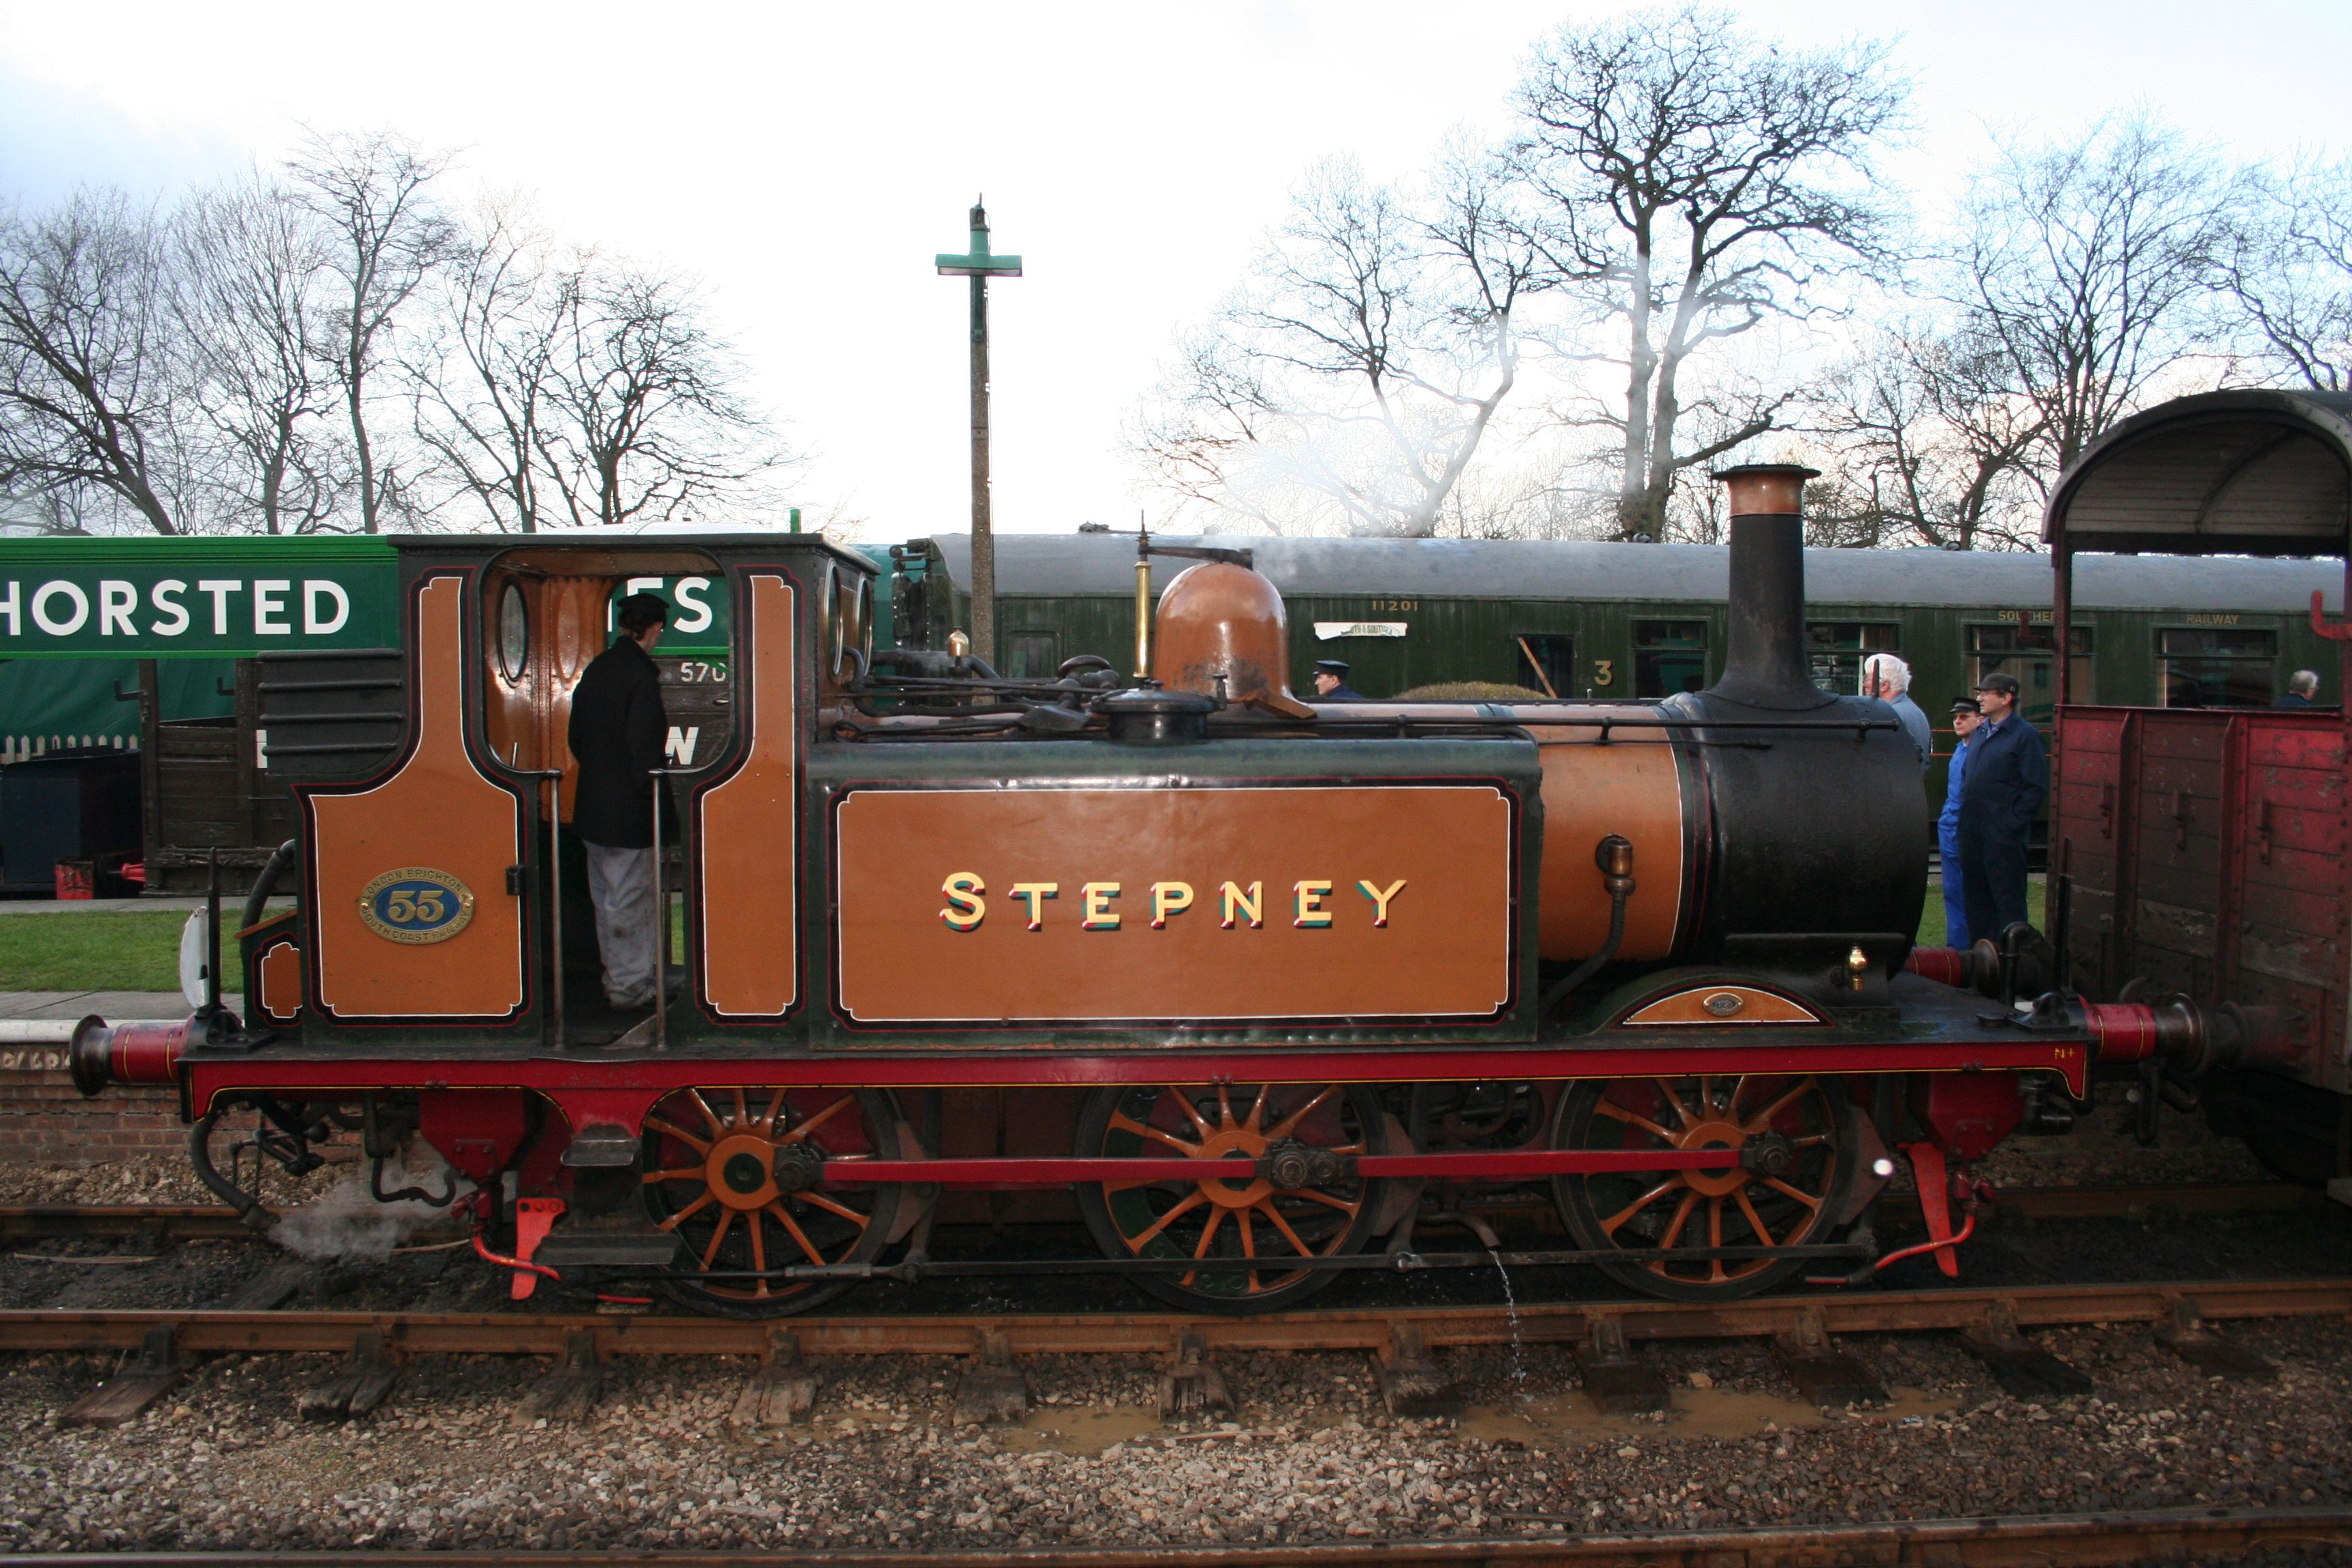 LBSC Tank, Stepney, at Horsted Keynes, Bluebell Railway